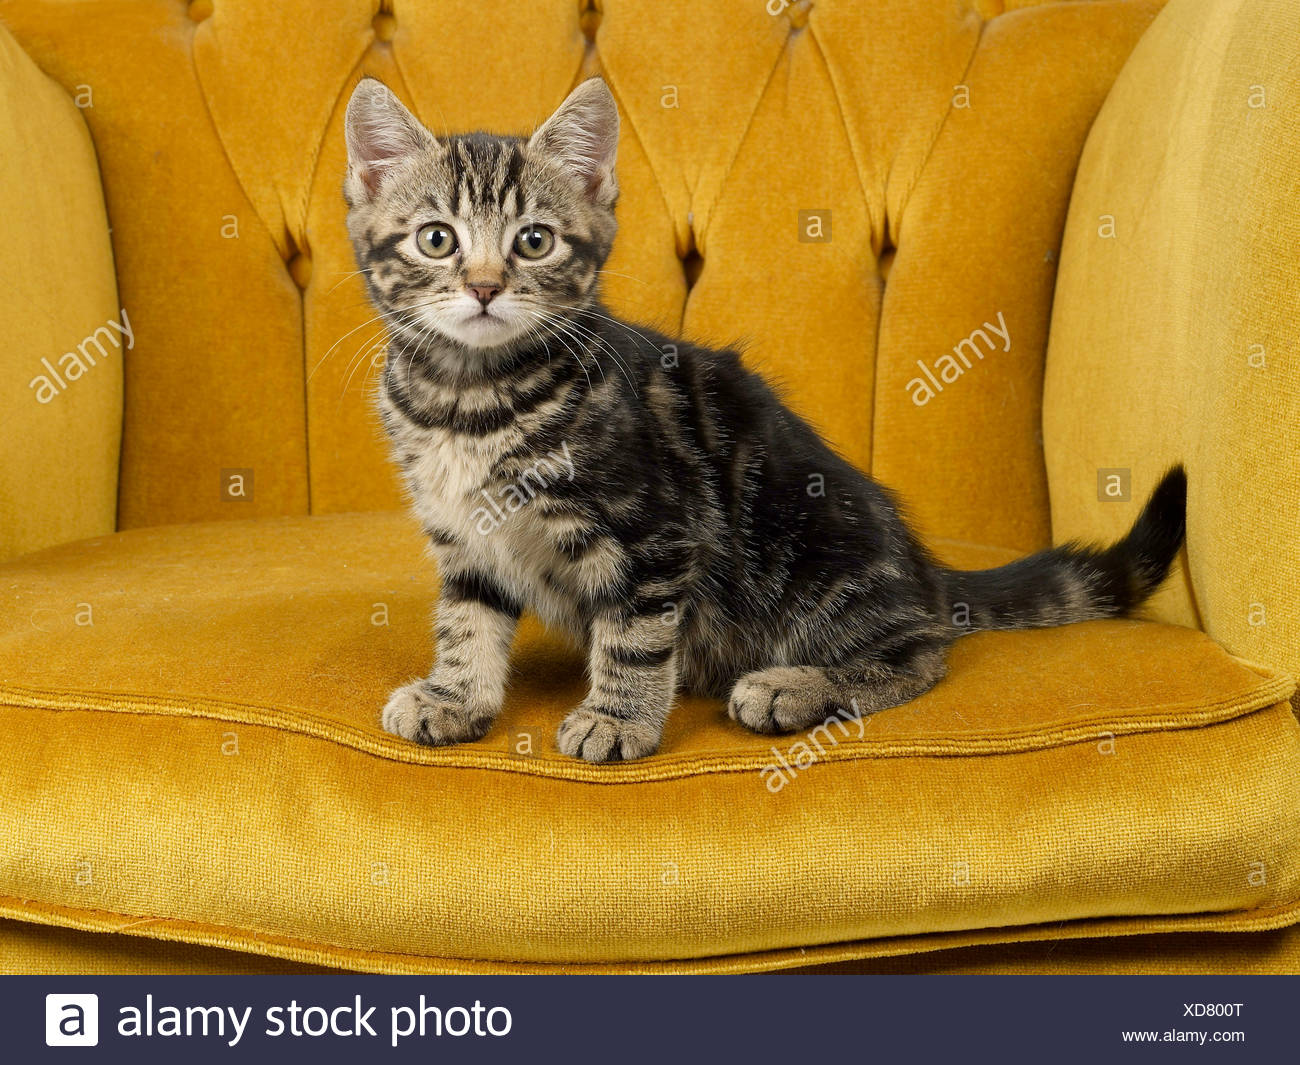 A small tabby kitten sitting on a posh chair. - Stock Image